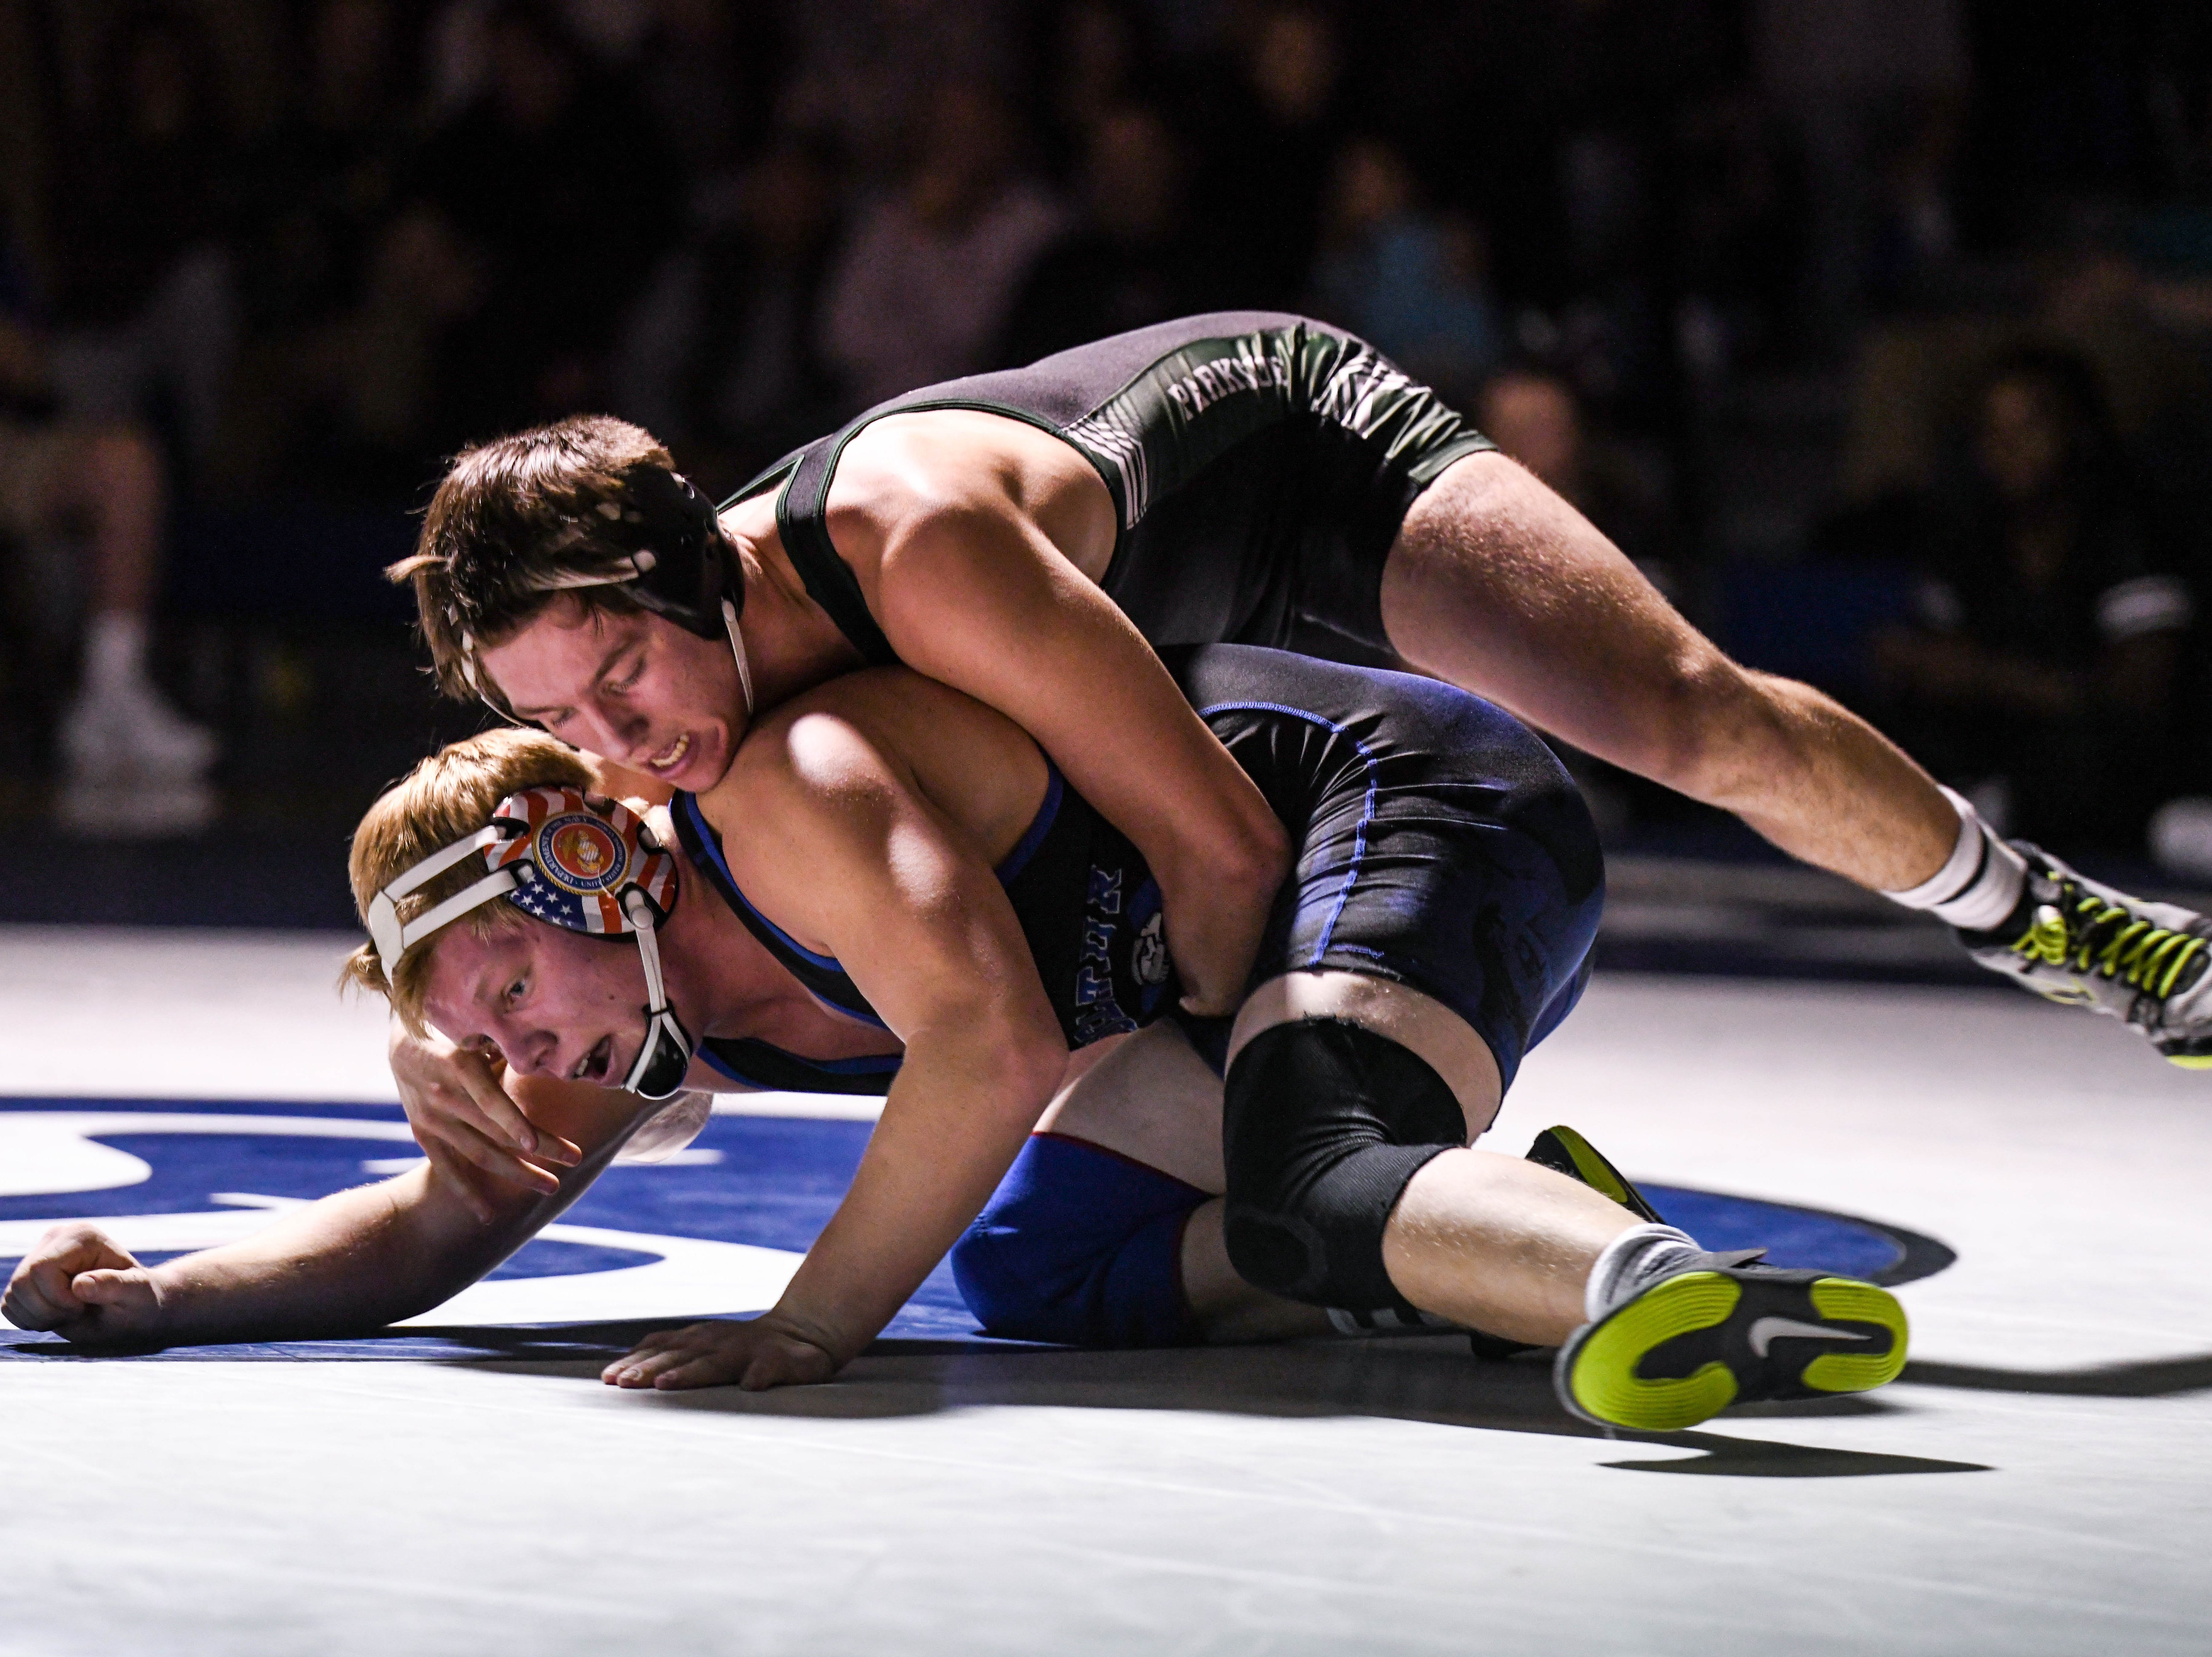 Stephen Decatur's Lukas Layton wrestles against Parkside's Eli Sellinger in the 170 match up at Stephen Decatur High School on Wednesday, Jan. 23, 2019.